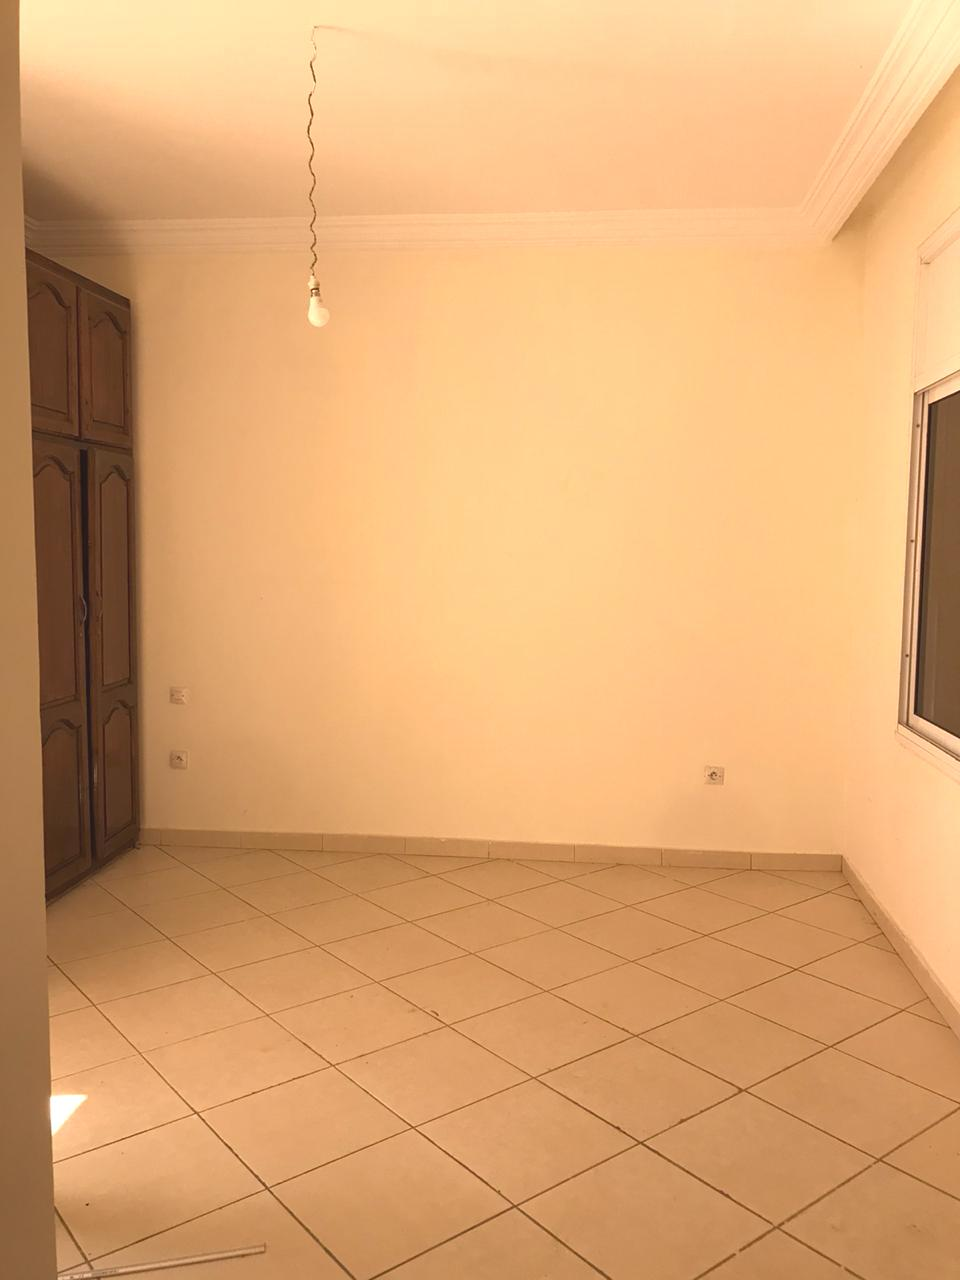 Location appartement à Founty